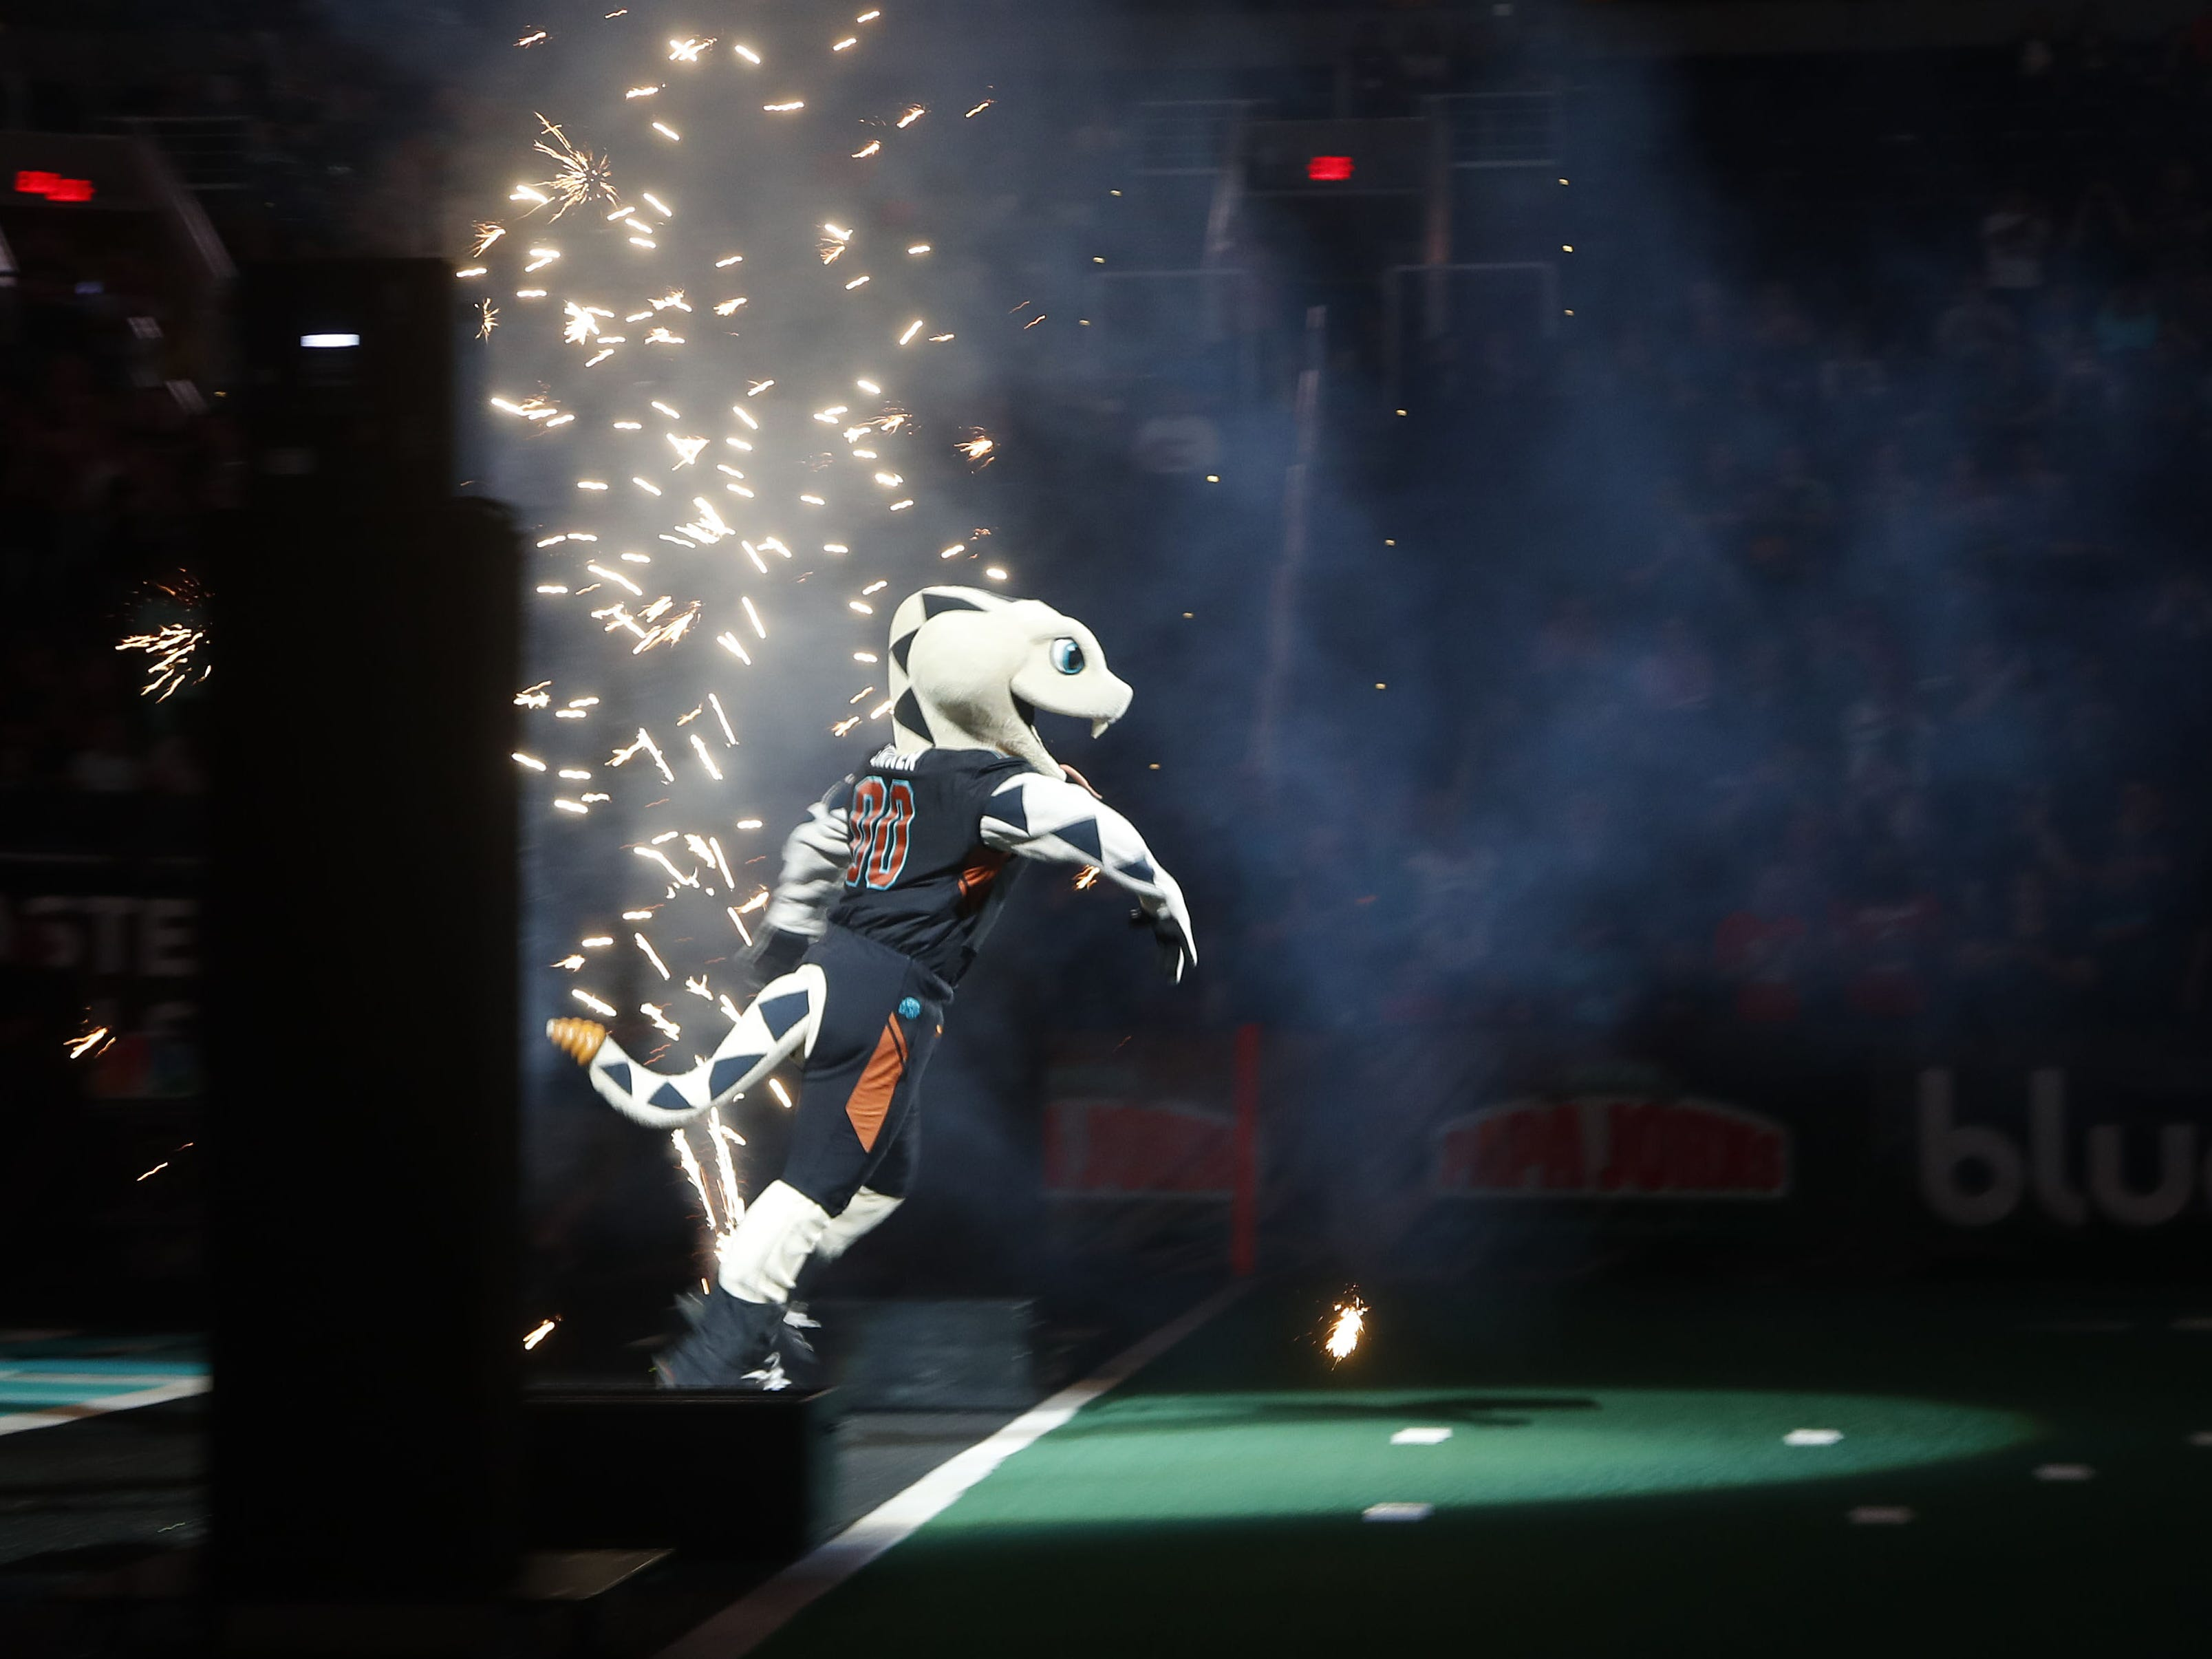 Stryker the Rattlers' mascot takes the field before the game against the Sugar Skulls at Talking Stick Resort Arena in Phoenix, Ariz. on March 16, 2019.